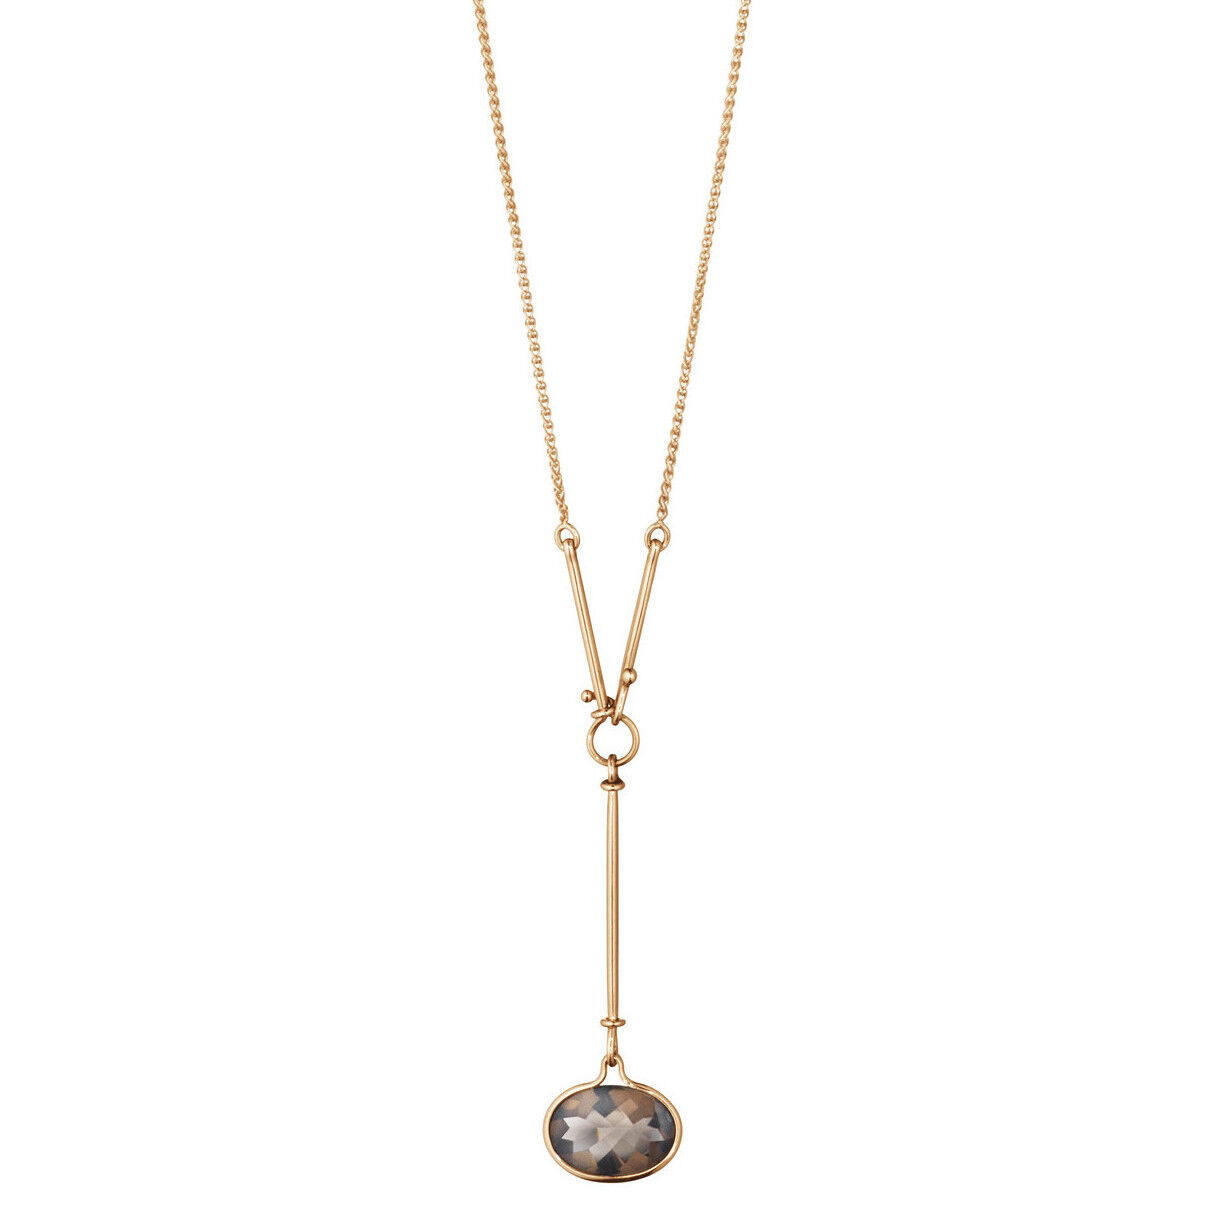 Georg Jensen 18k pink gold Pendant with Smoke Quartz B. 90 cm. - Savannah